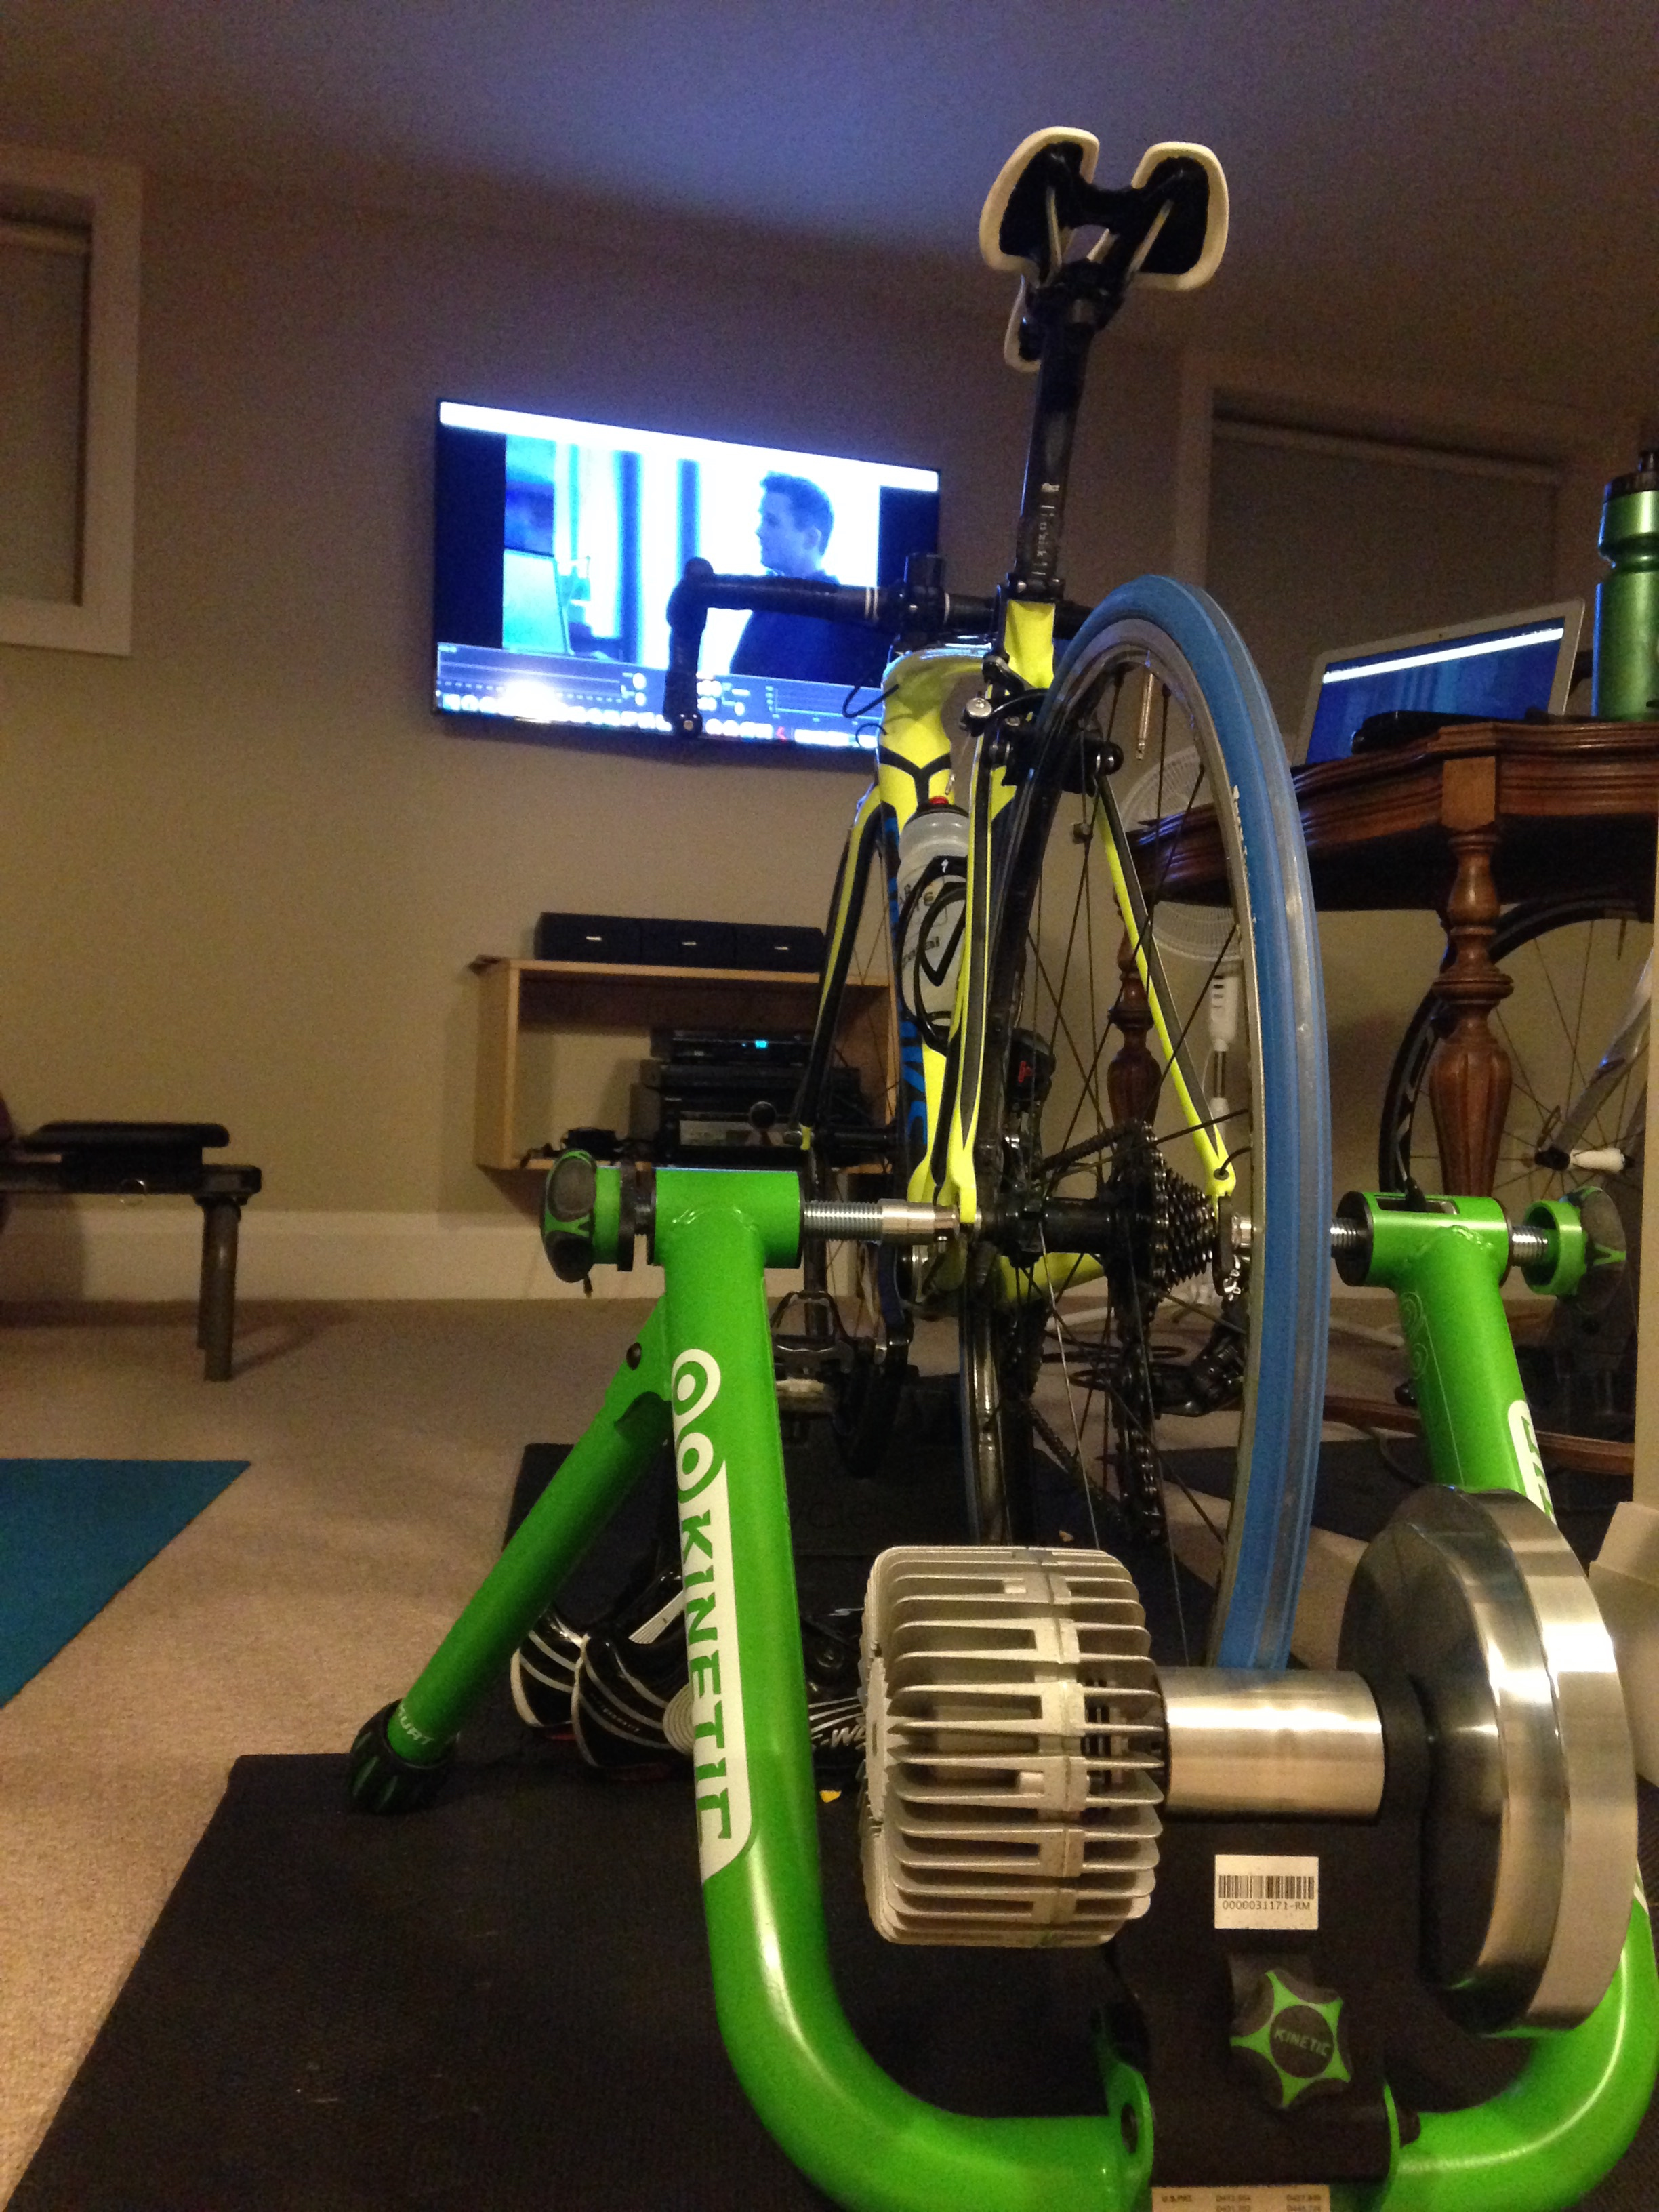 Kurt Kinetic Road Machine &  Trainer Road  software playing over top of Netflix on TV.